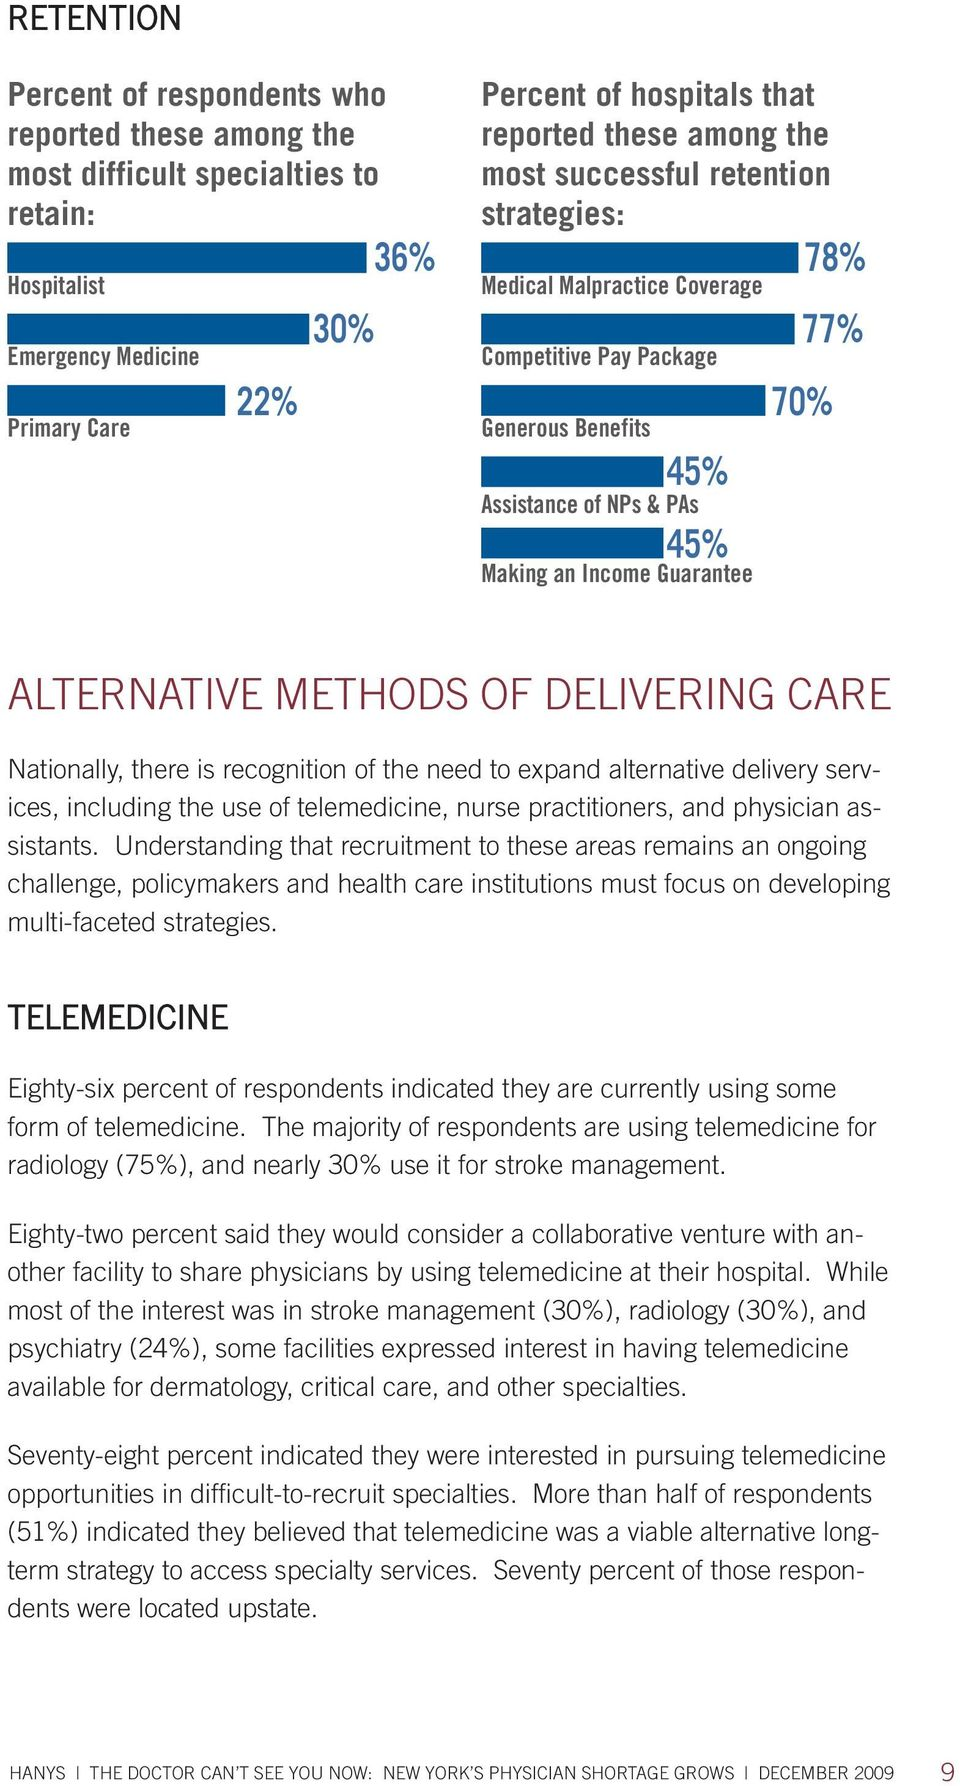 ALTERNATIVE METHODS OF DELIVERING CARE Nationally, there is recognition of the need to expand alternative delivery services, including the use of telemedicine, nurse practitioners, and physician